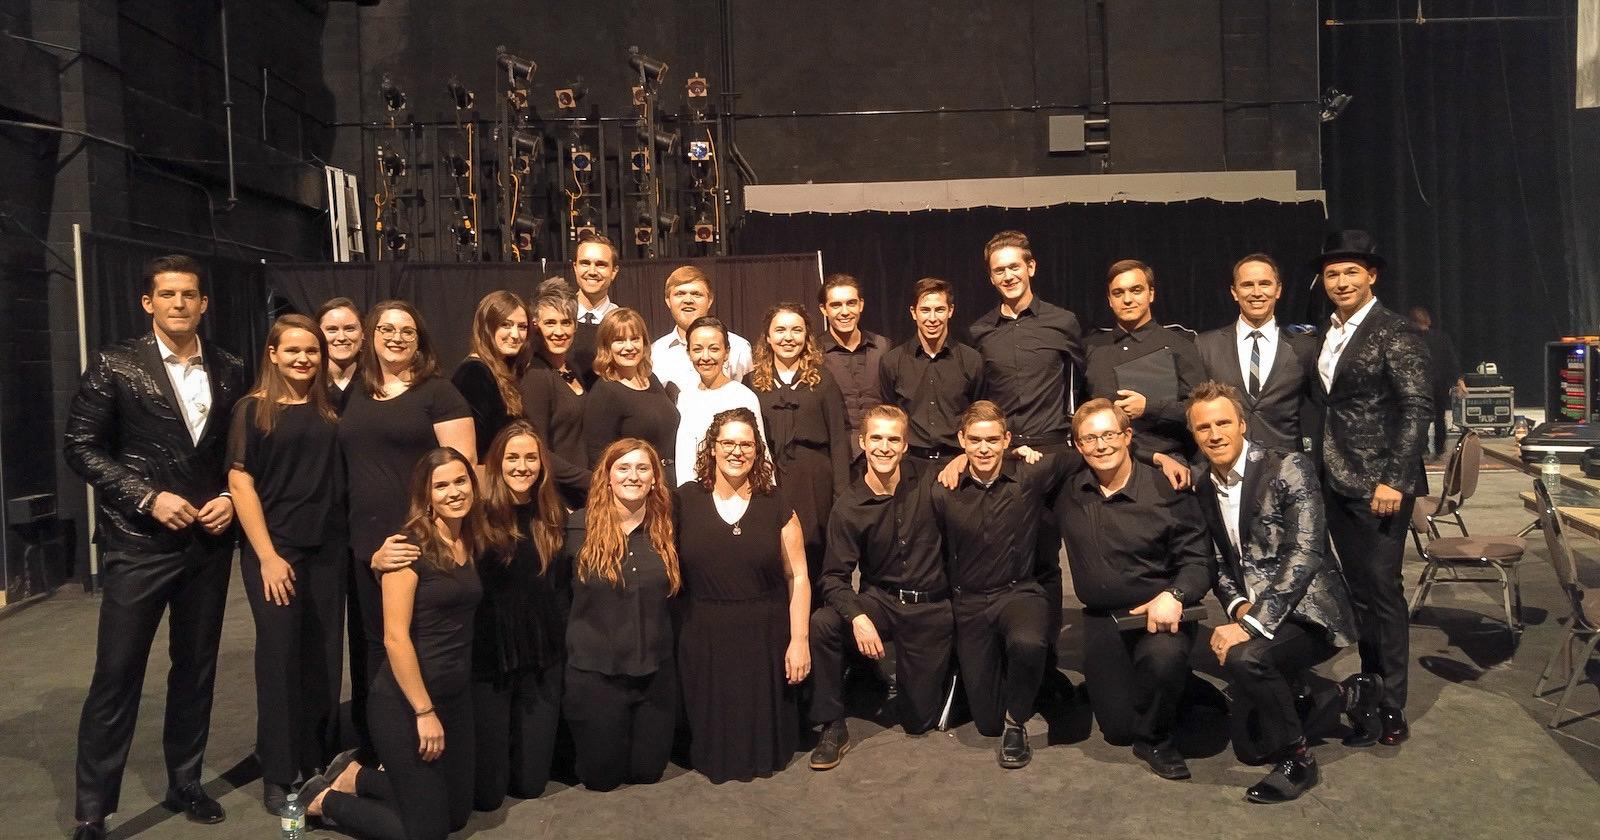 briercrest music works quickly to back up the tenors